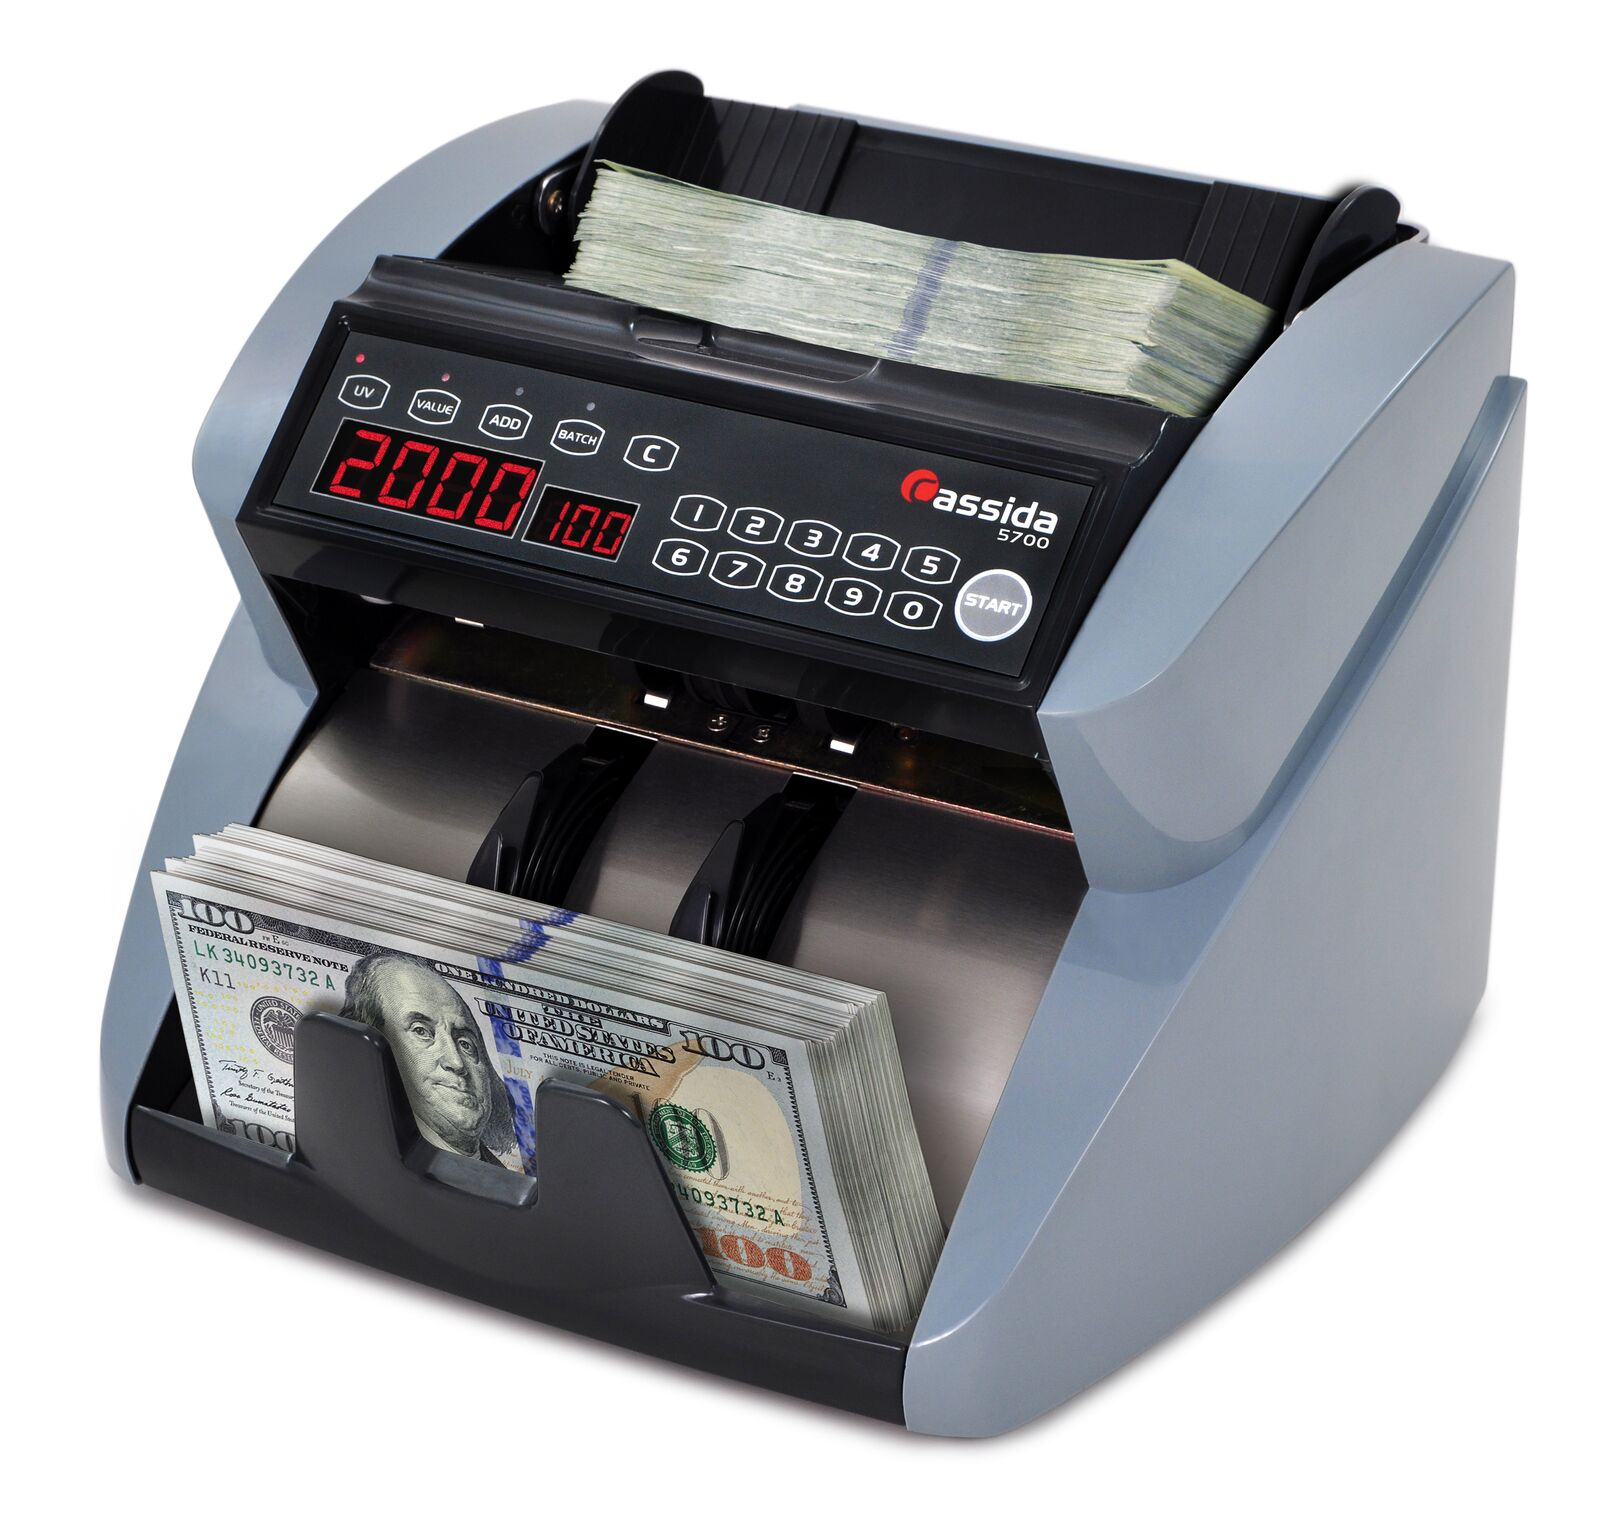 Cassida 5700 UV Currency Counter with ValueCount